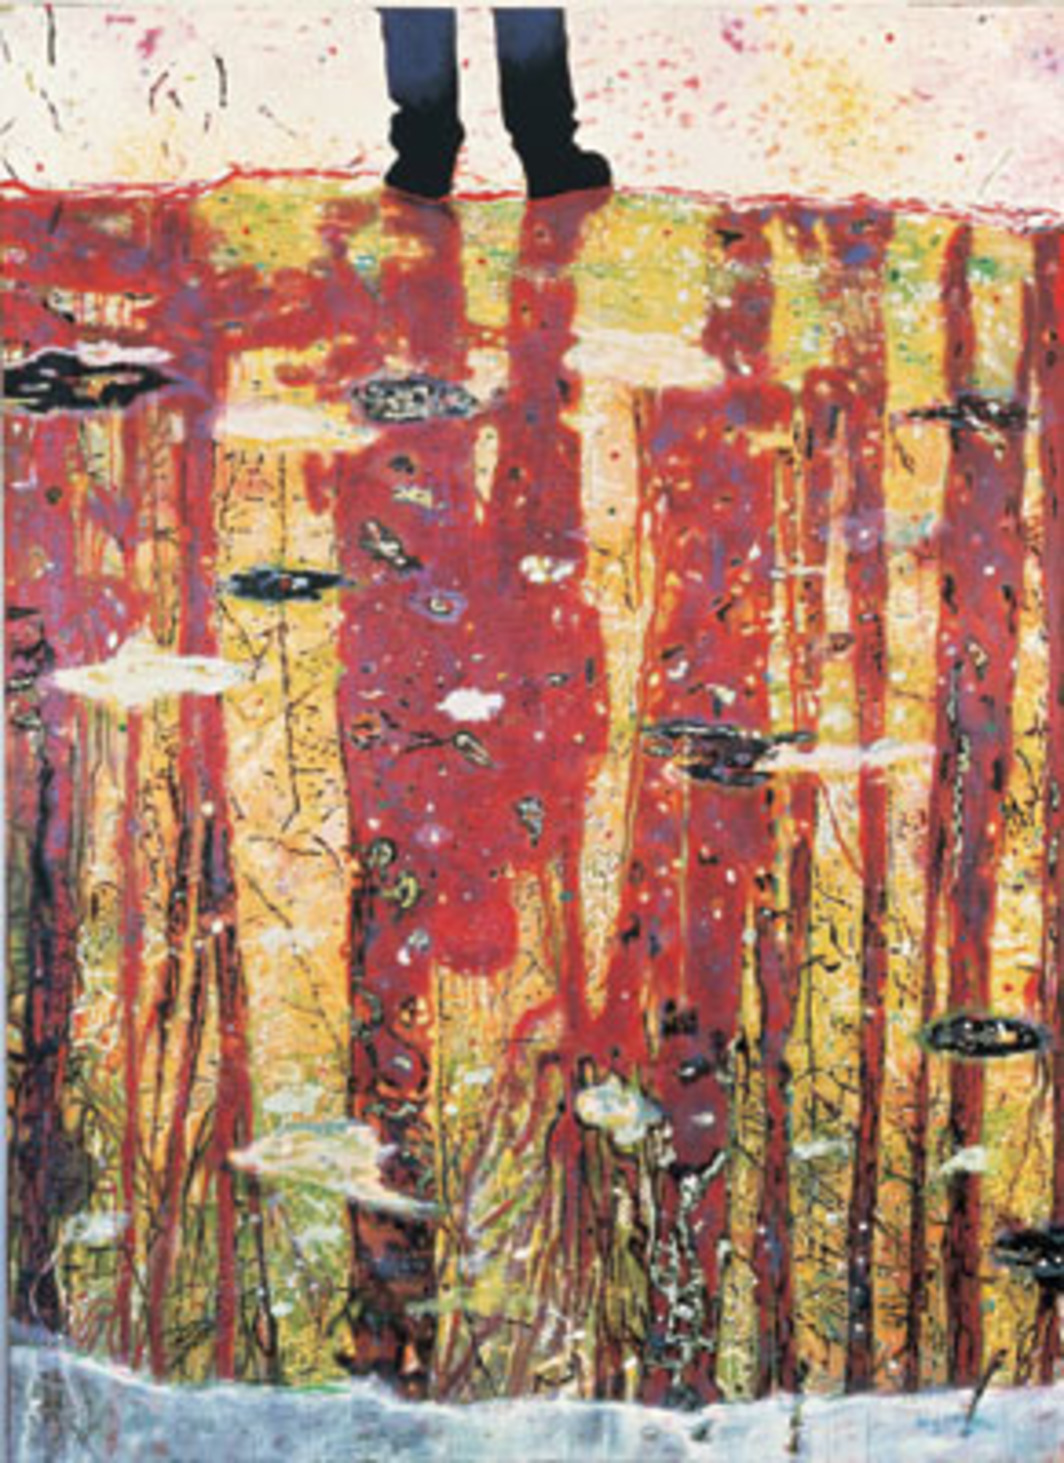 "Peter Doig, Reflection (What Does Your Soul Look Like?), 1996, oil on canvas, 116 x 78 3/4""."